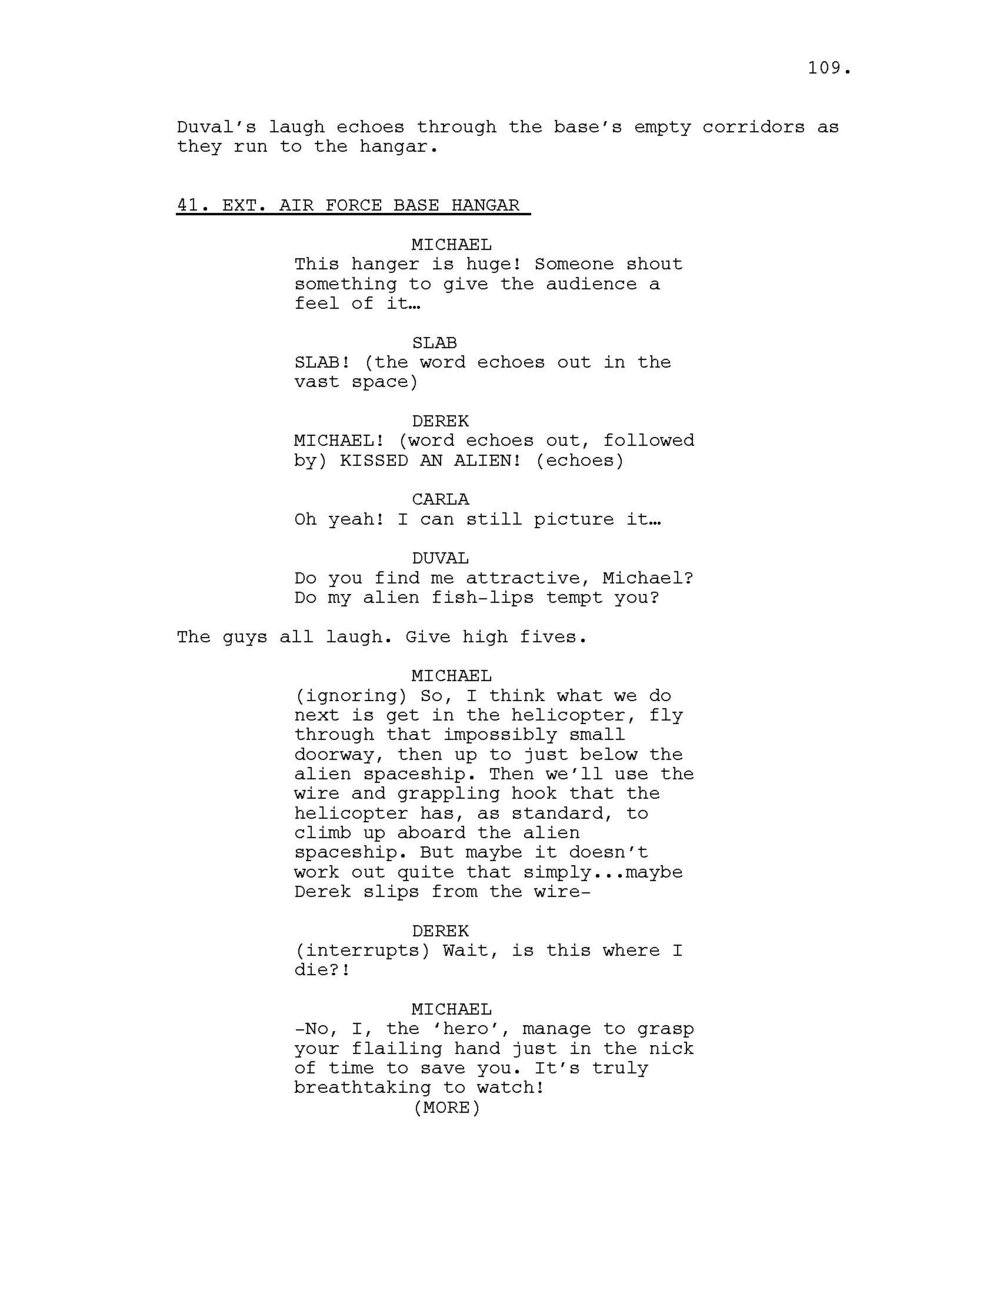 INVISIBLE WORLD SCRIPT_Page_110.jpg